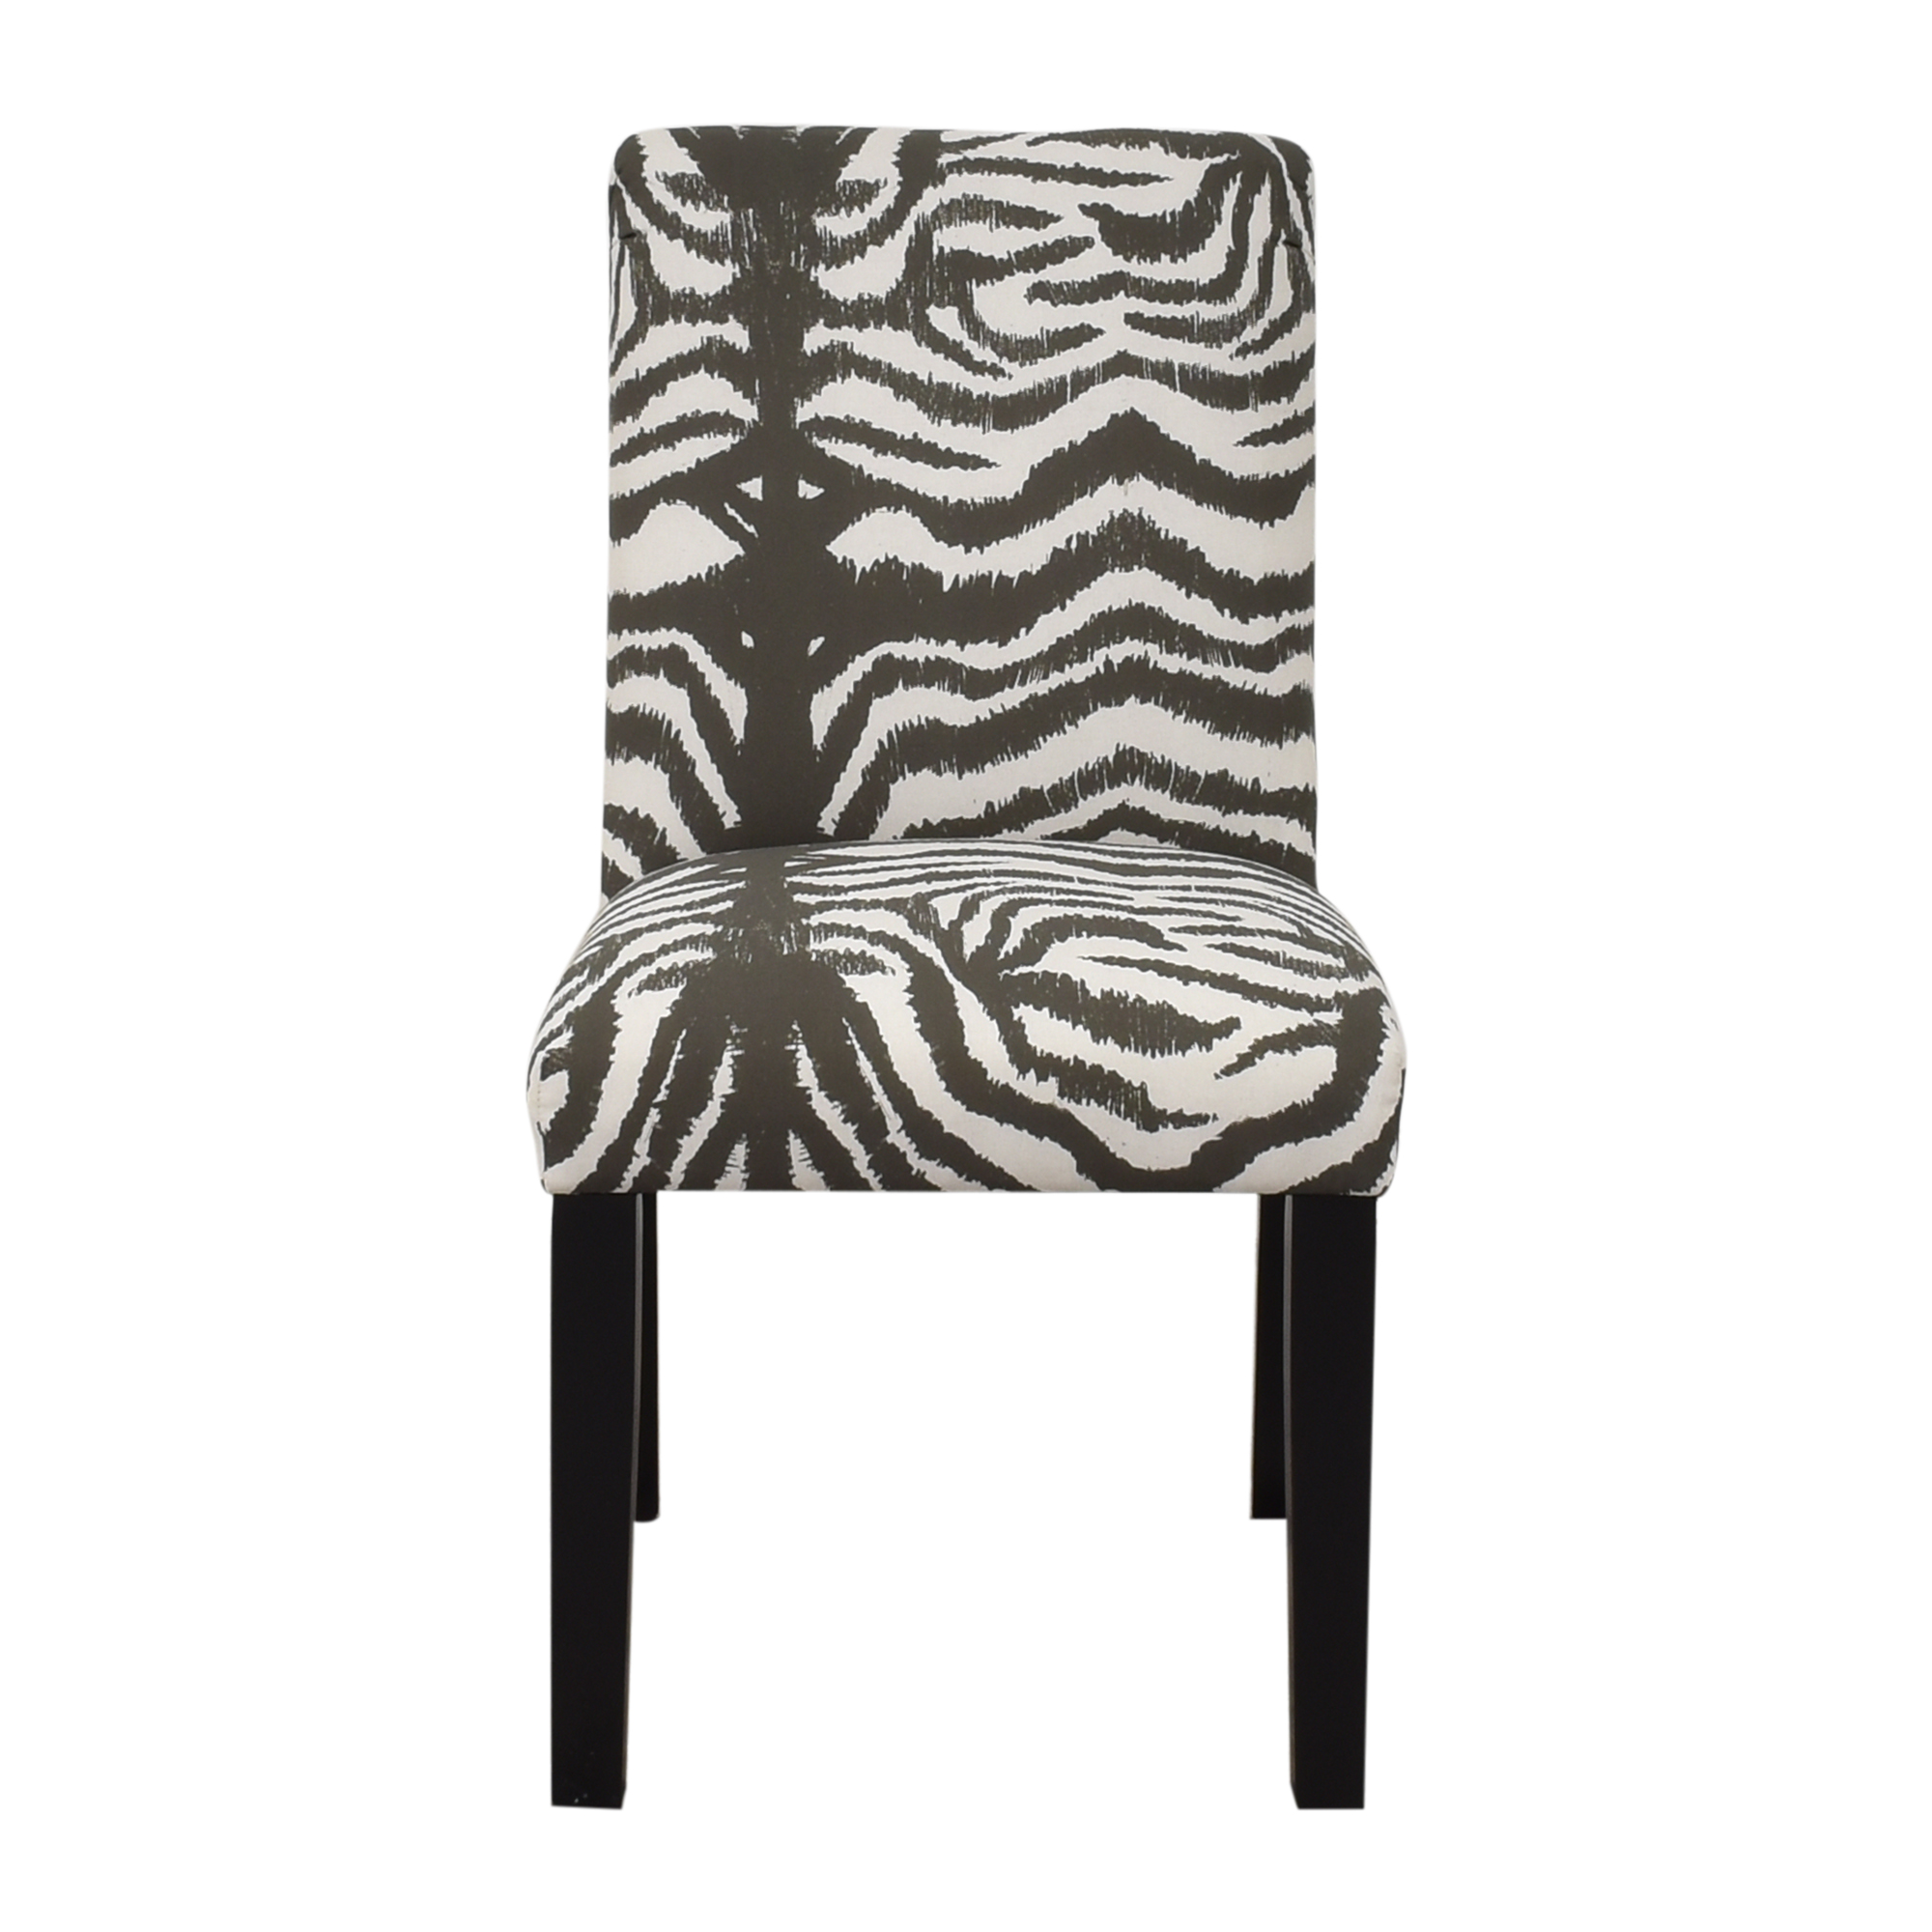 The Inside The Inside Zebra Classic Dining Chair pa